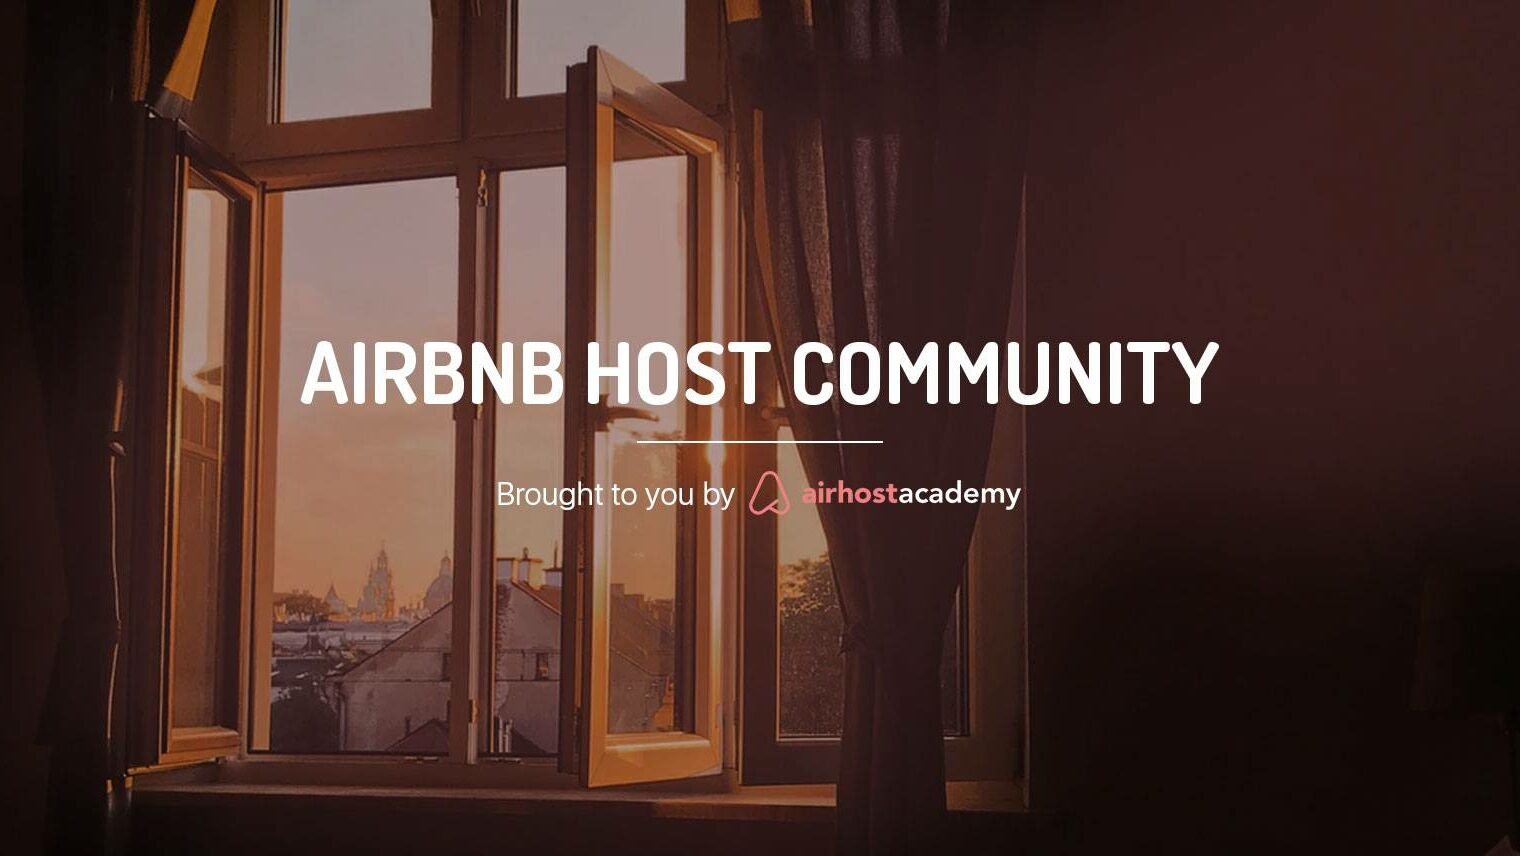 Airbnb Host Community - Vent, Recommend, and Discuss Facebook group